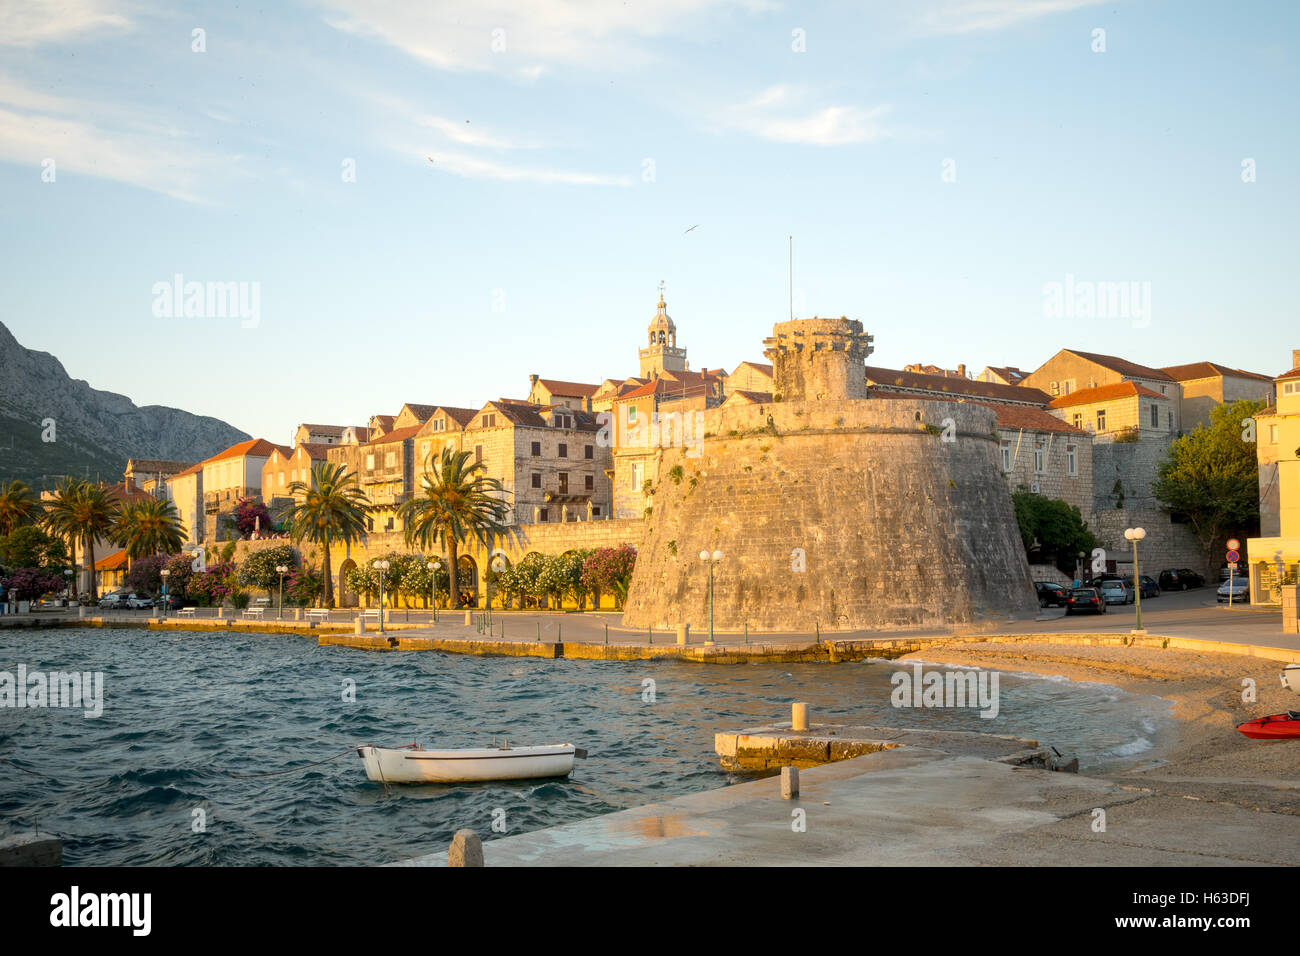 Sunset scene in the old town (west side), with the walls, houses, boats, in Korcula, Croatia - Stock Image